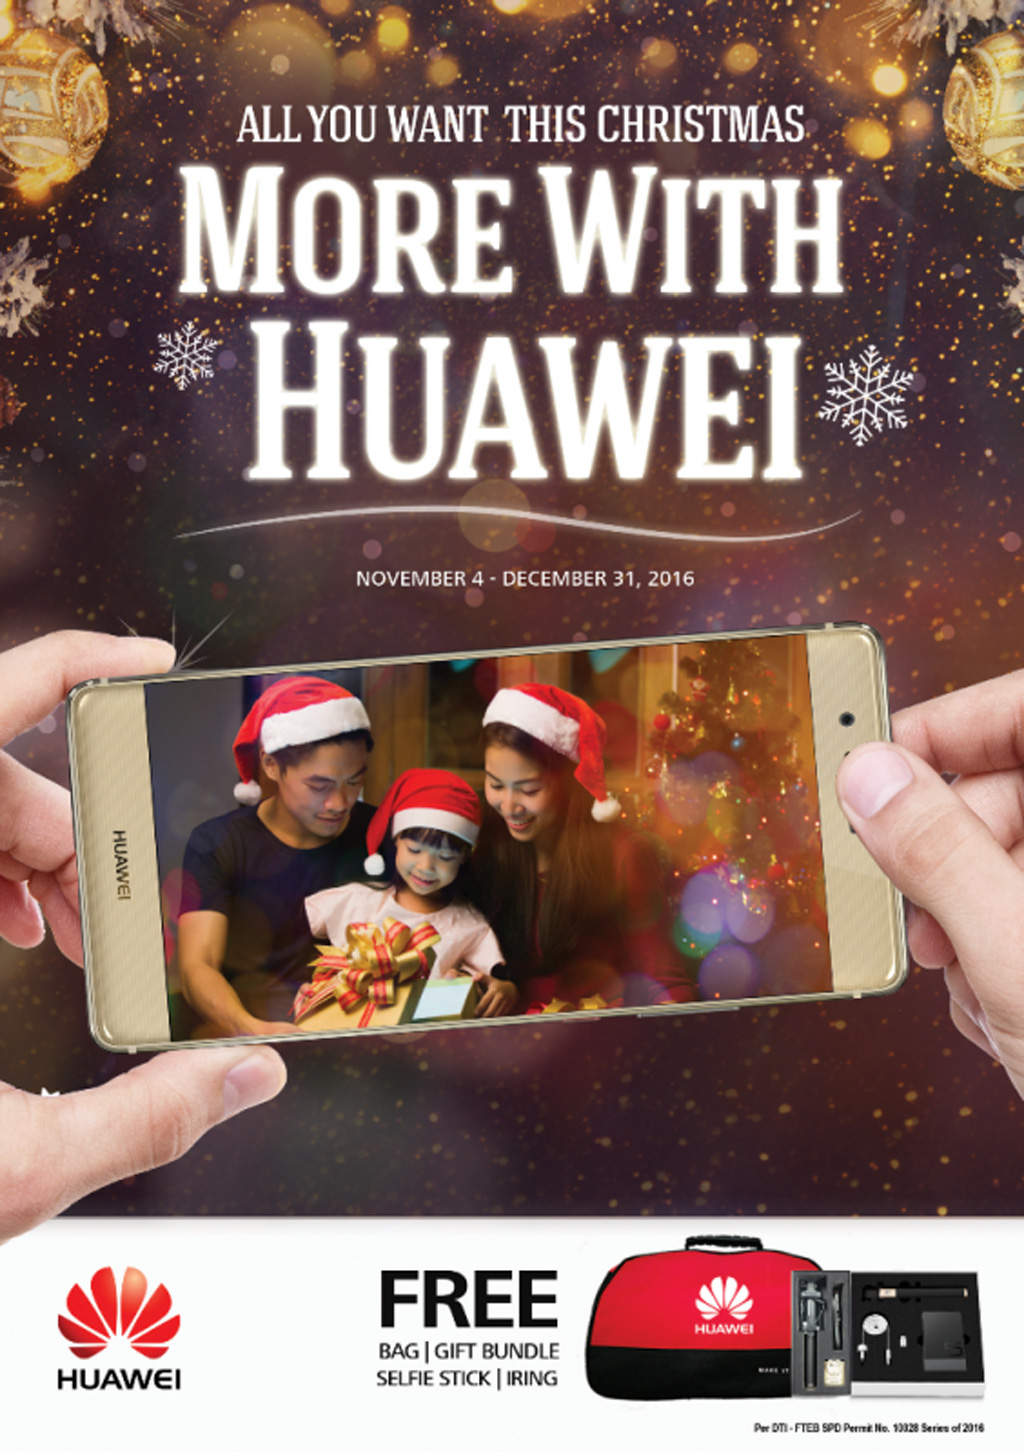 More with Huawei